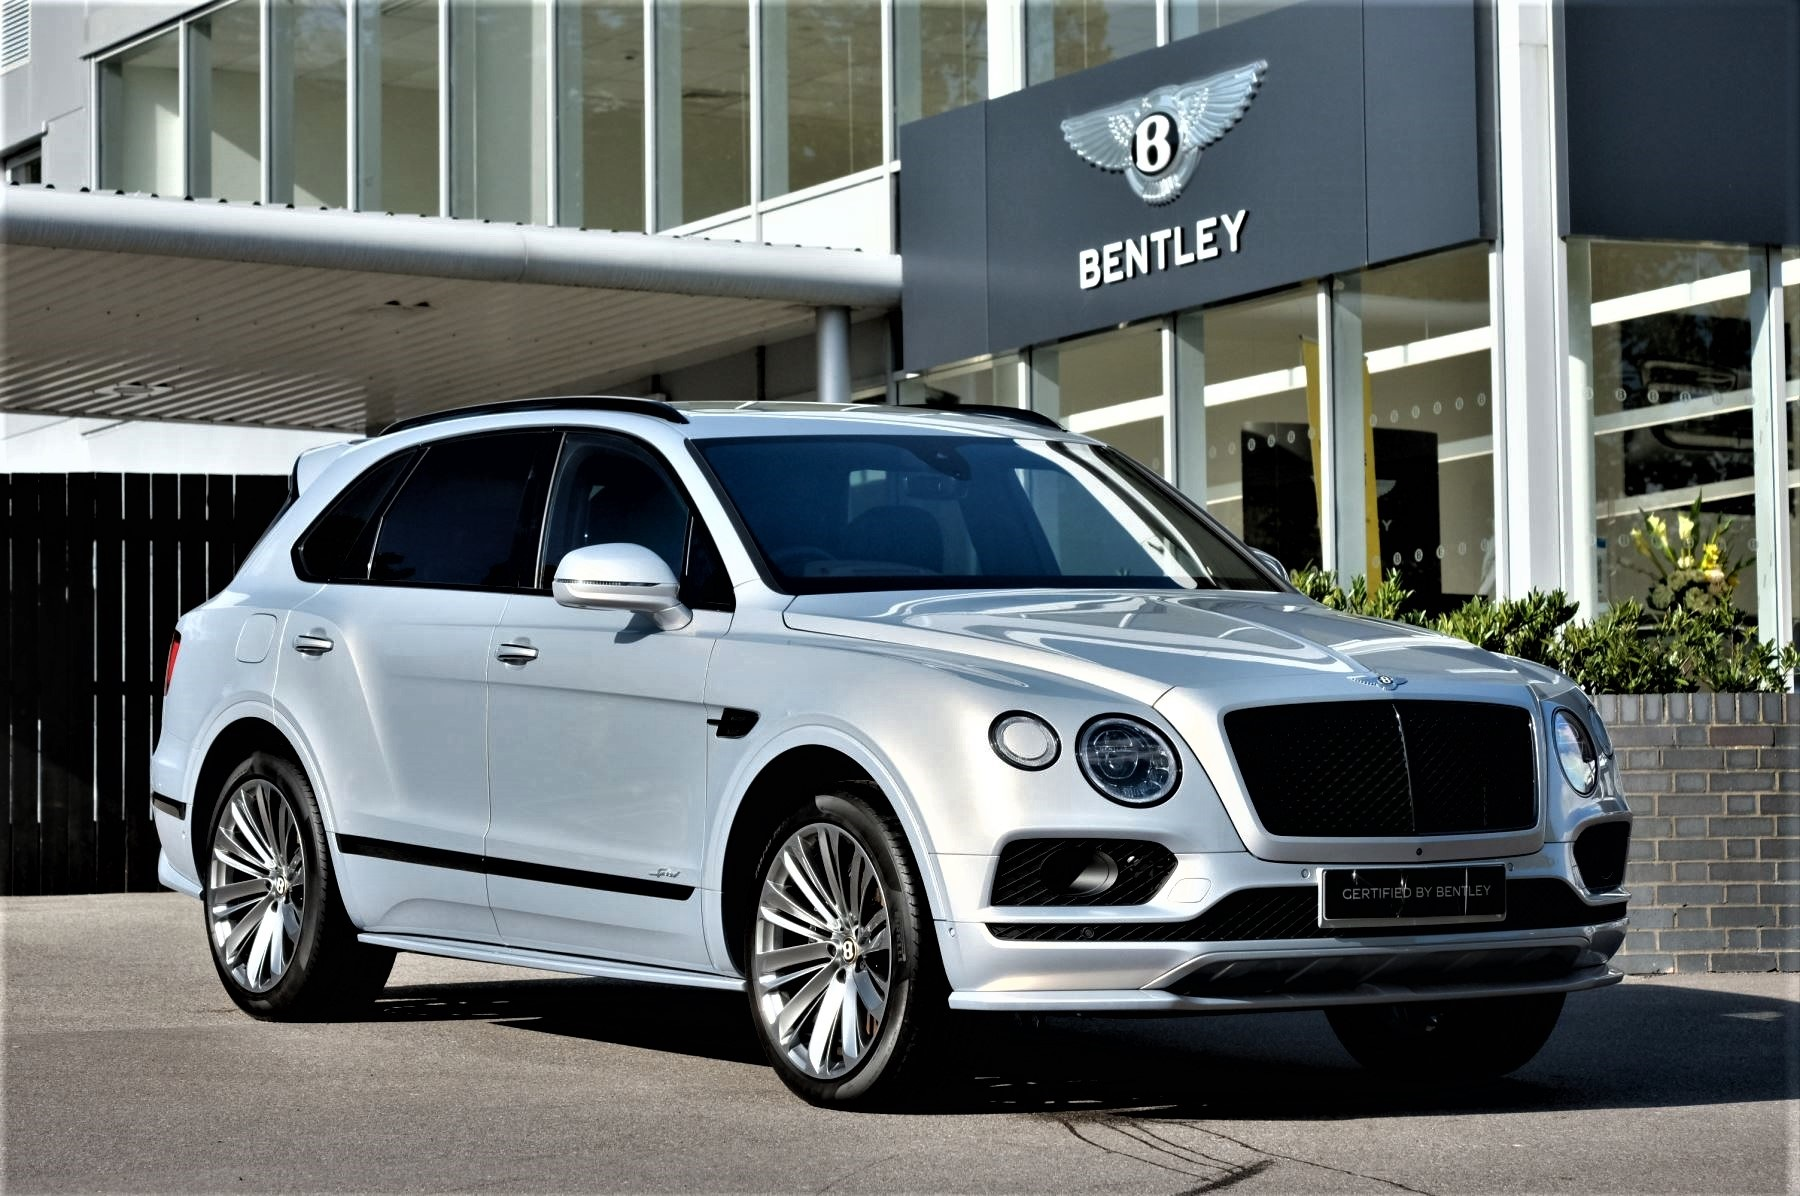 Bentley Bentayga Speed - City & Touring 6.0 Automatic 5 door Estate (2020)